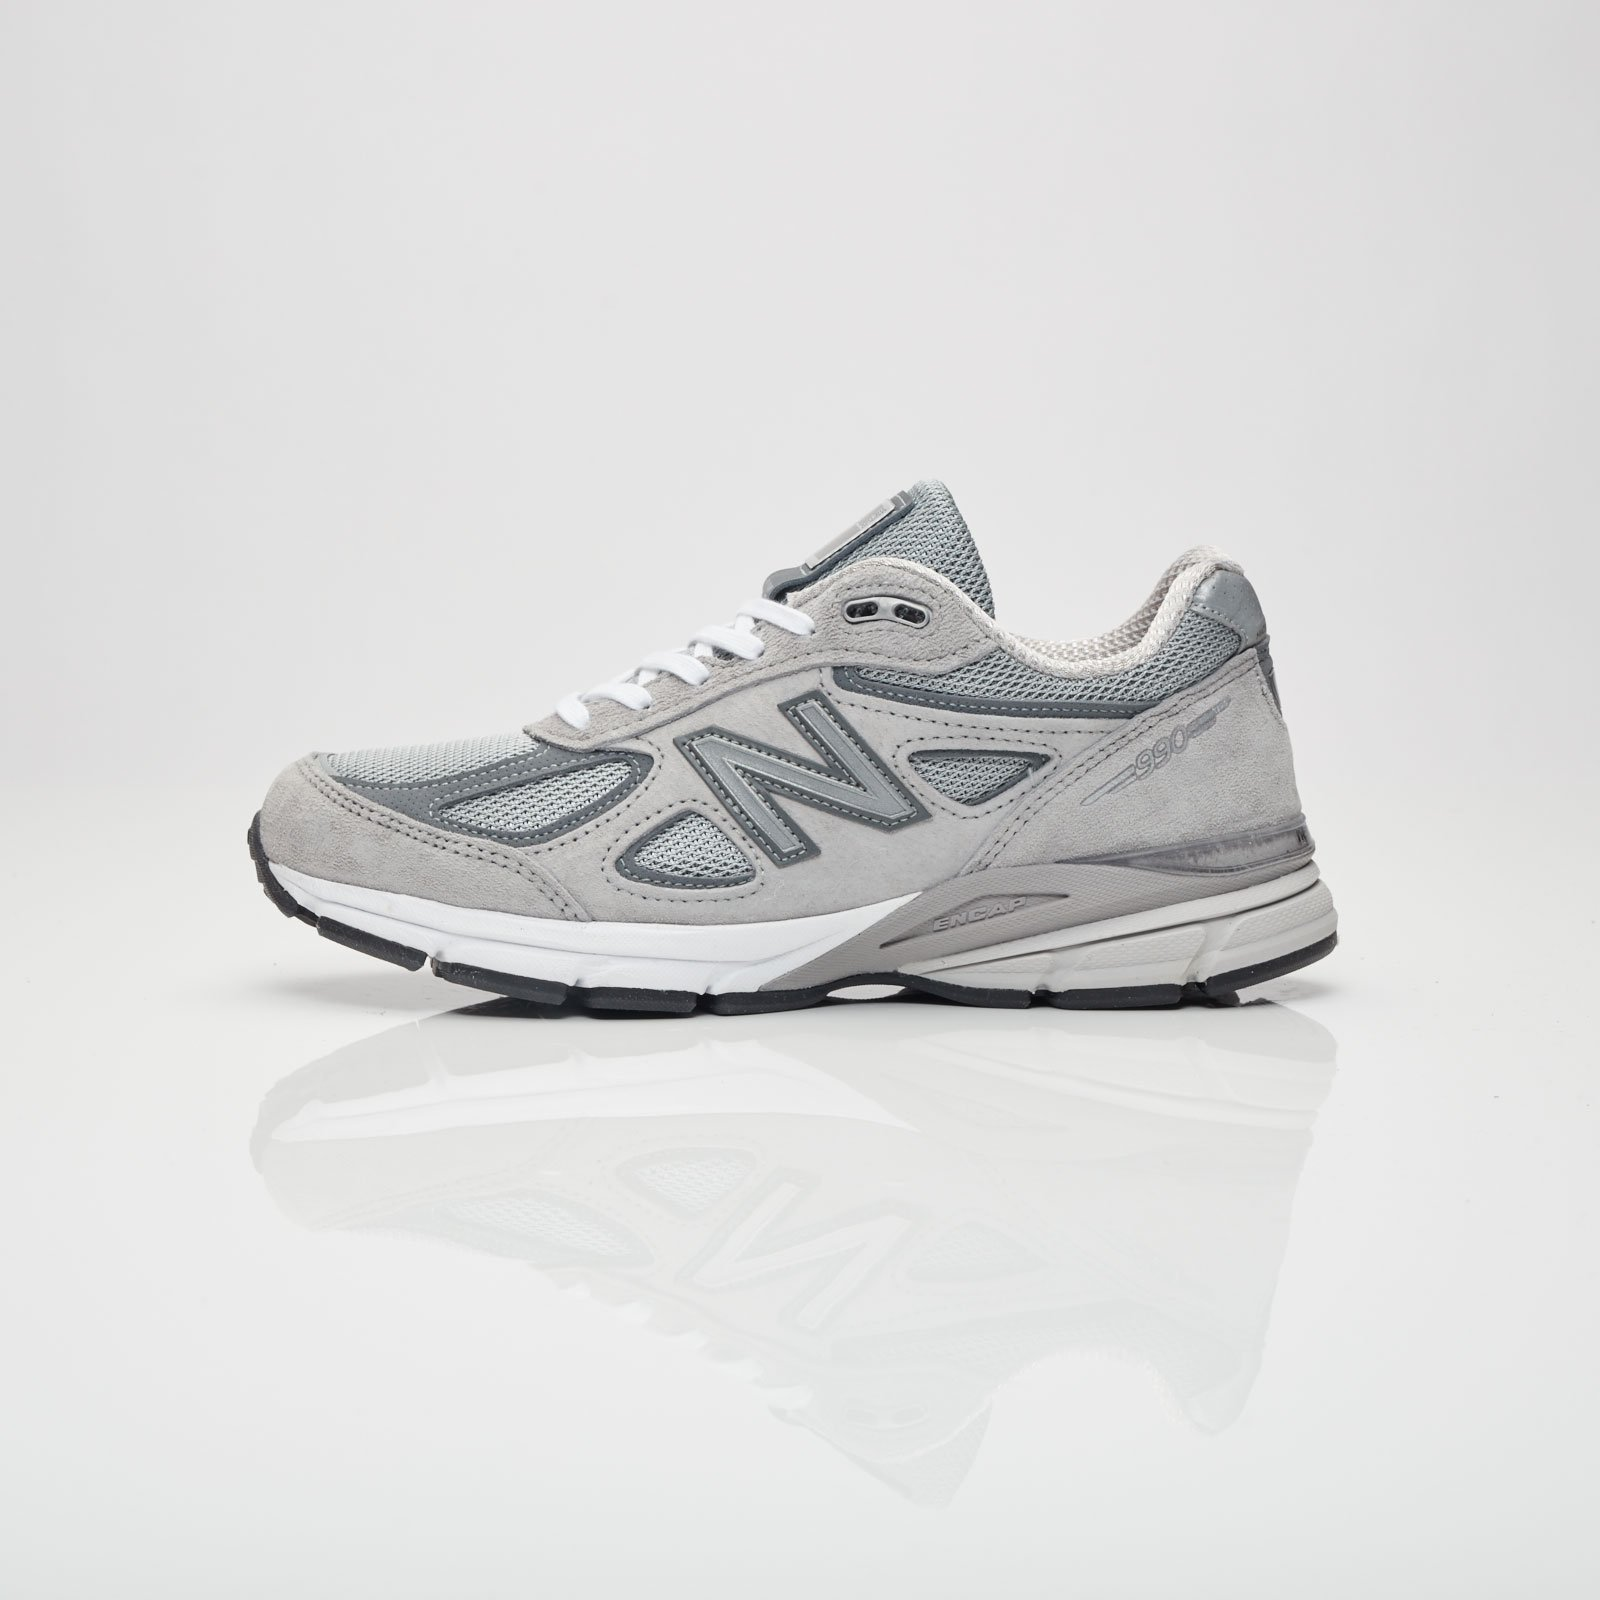 premium selection 8c1c4 f5a21 New Balance W990 - W990gl4 - Sneakersnstuff | sneakers ...